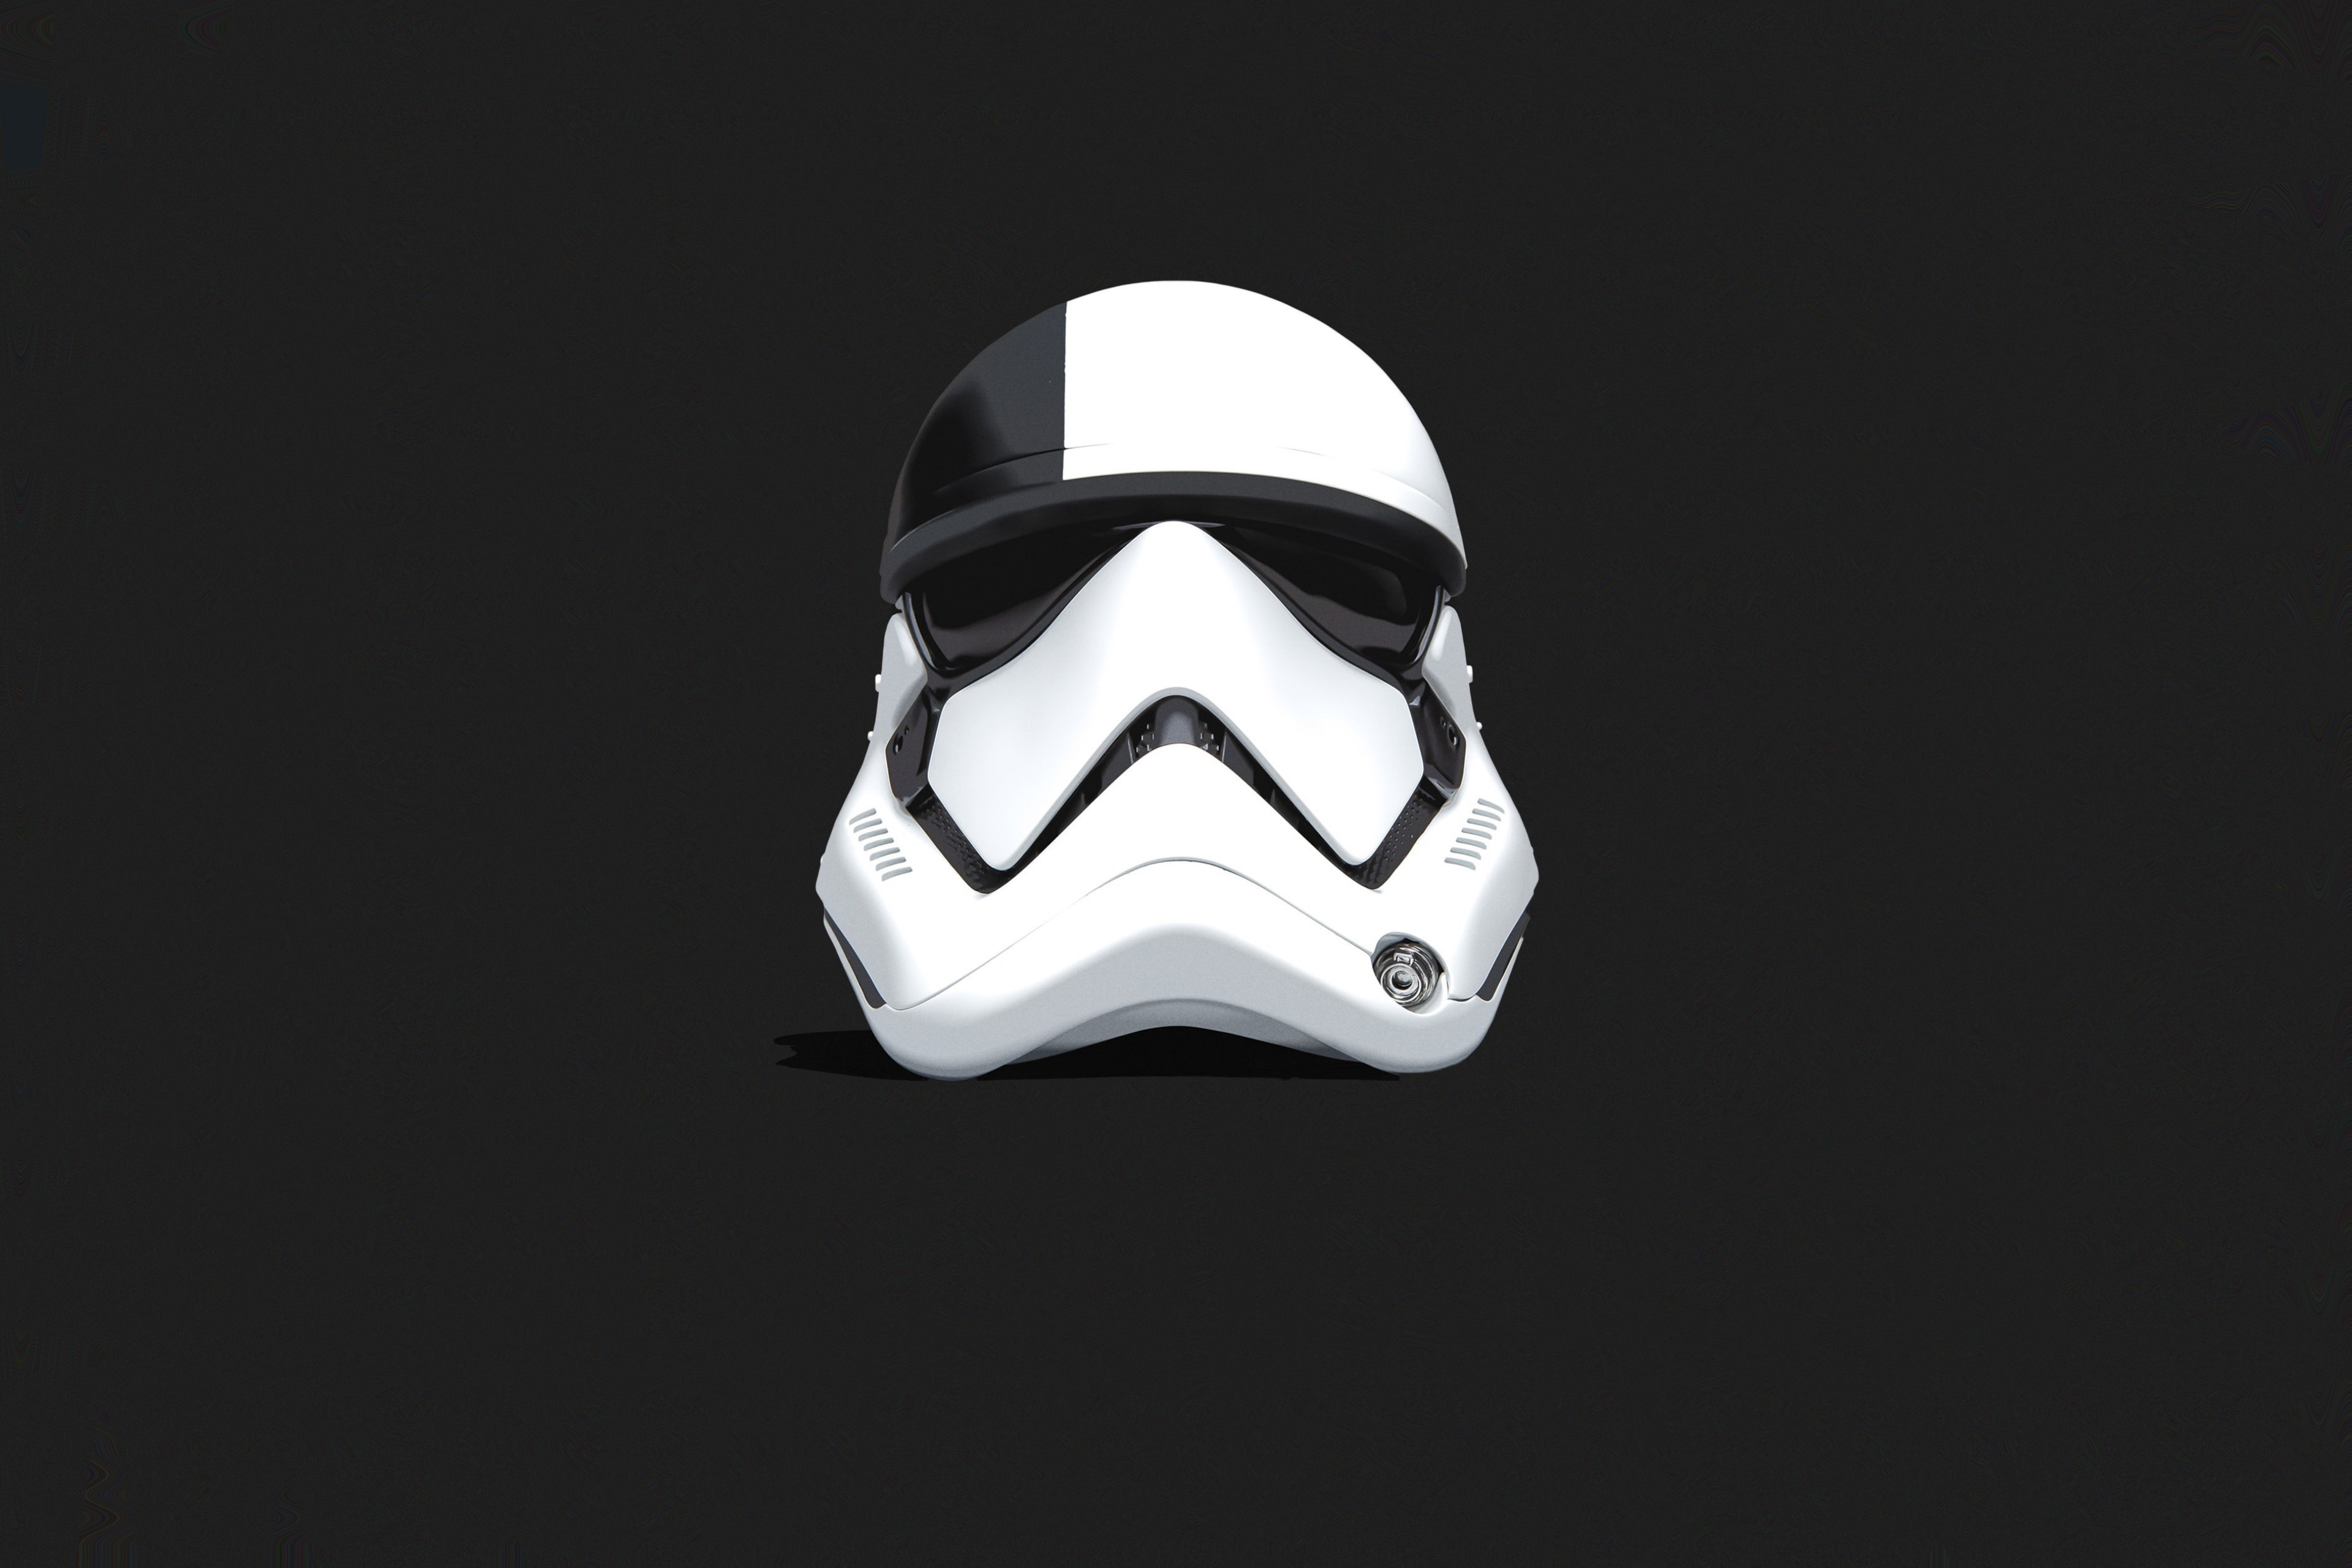 2560x1440 Stormtrooper Helmet Star Wars 1440p Resolution Wallpaper Hd Minimalist 4k Wallpapers Images Photos And Background